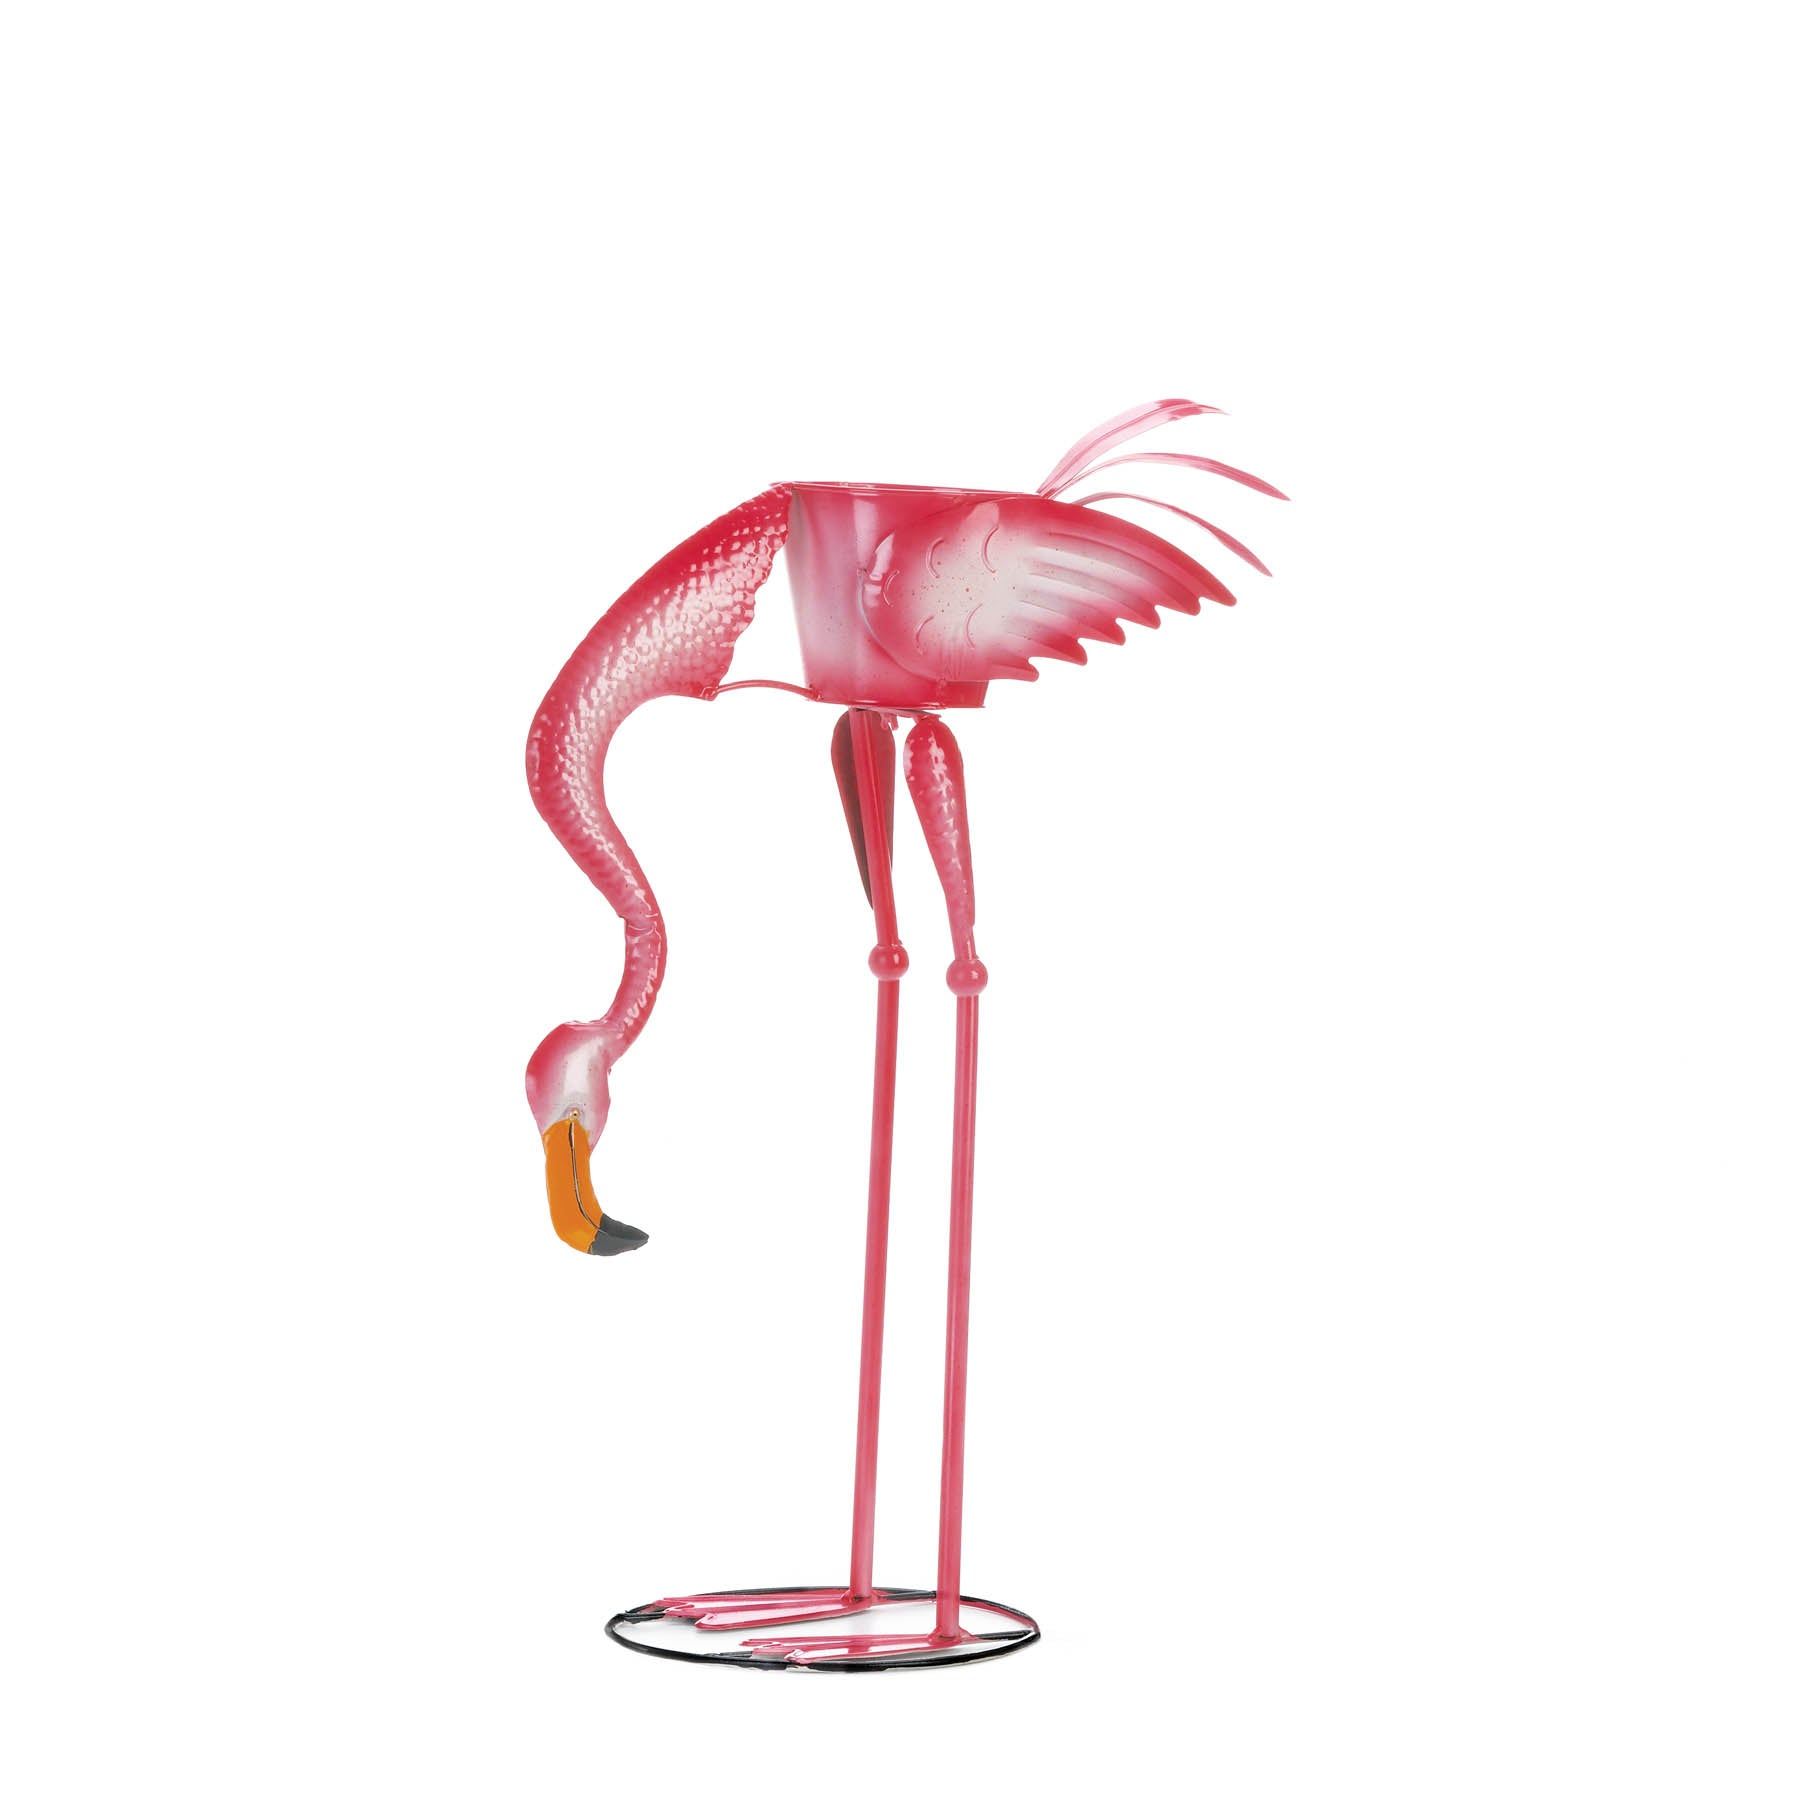 Summerfield Terrace Ready To Eat Flamingo Planter - 10018903